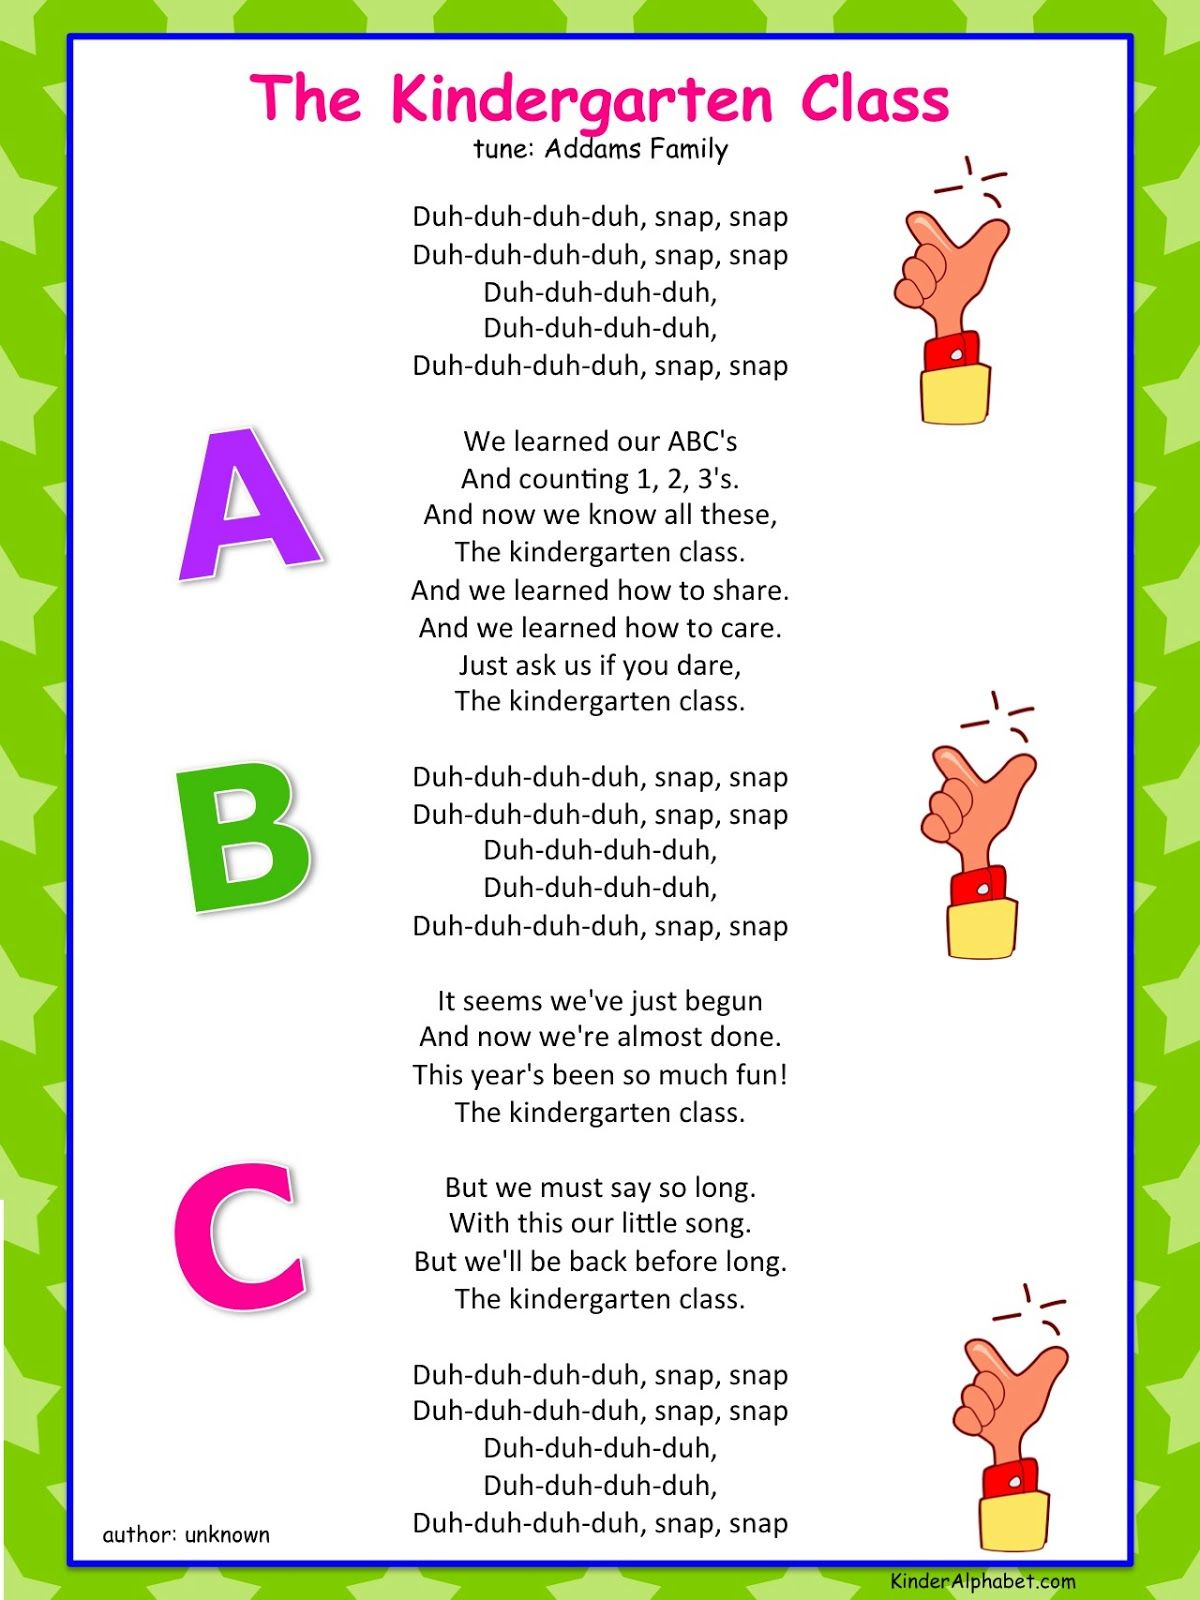 First Grade First Grade Here We  e likewise Cb F Cf A D E B A furthermore Eef F D Cd D Df further First Grade First Grade Here We  e as well Bd F D C C B A Cbb B Free Poems Gift Ideas For Teachers. on end of year ideas plus free poems and